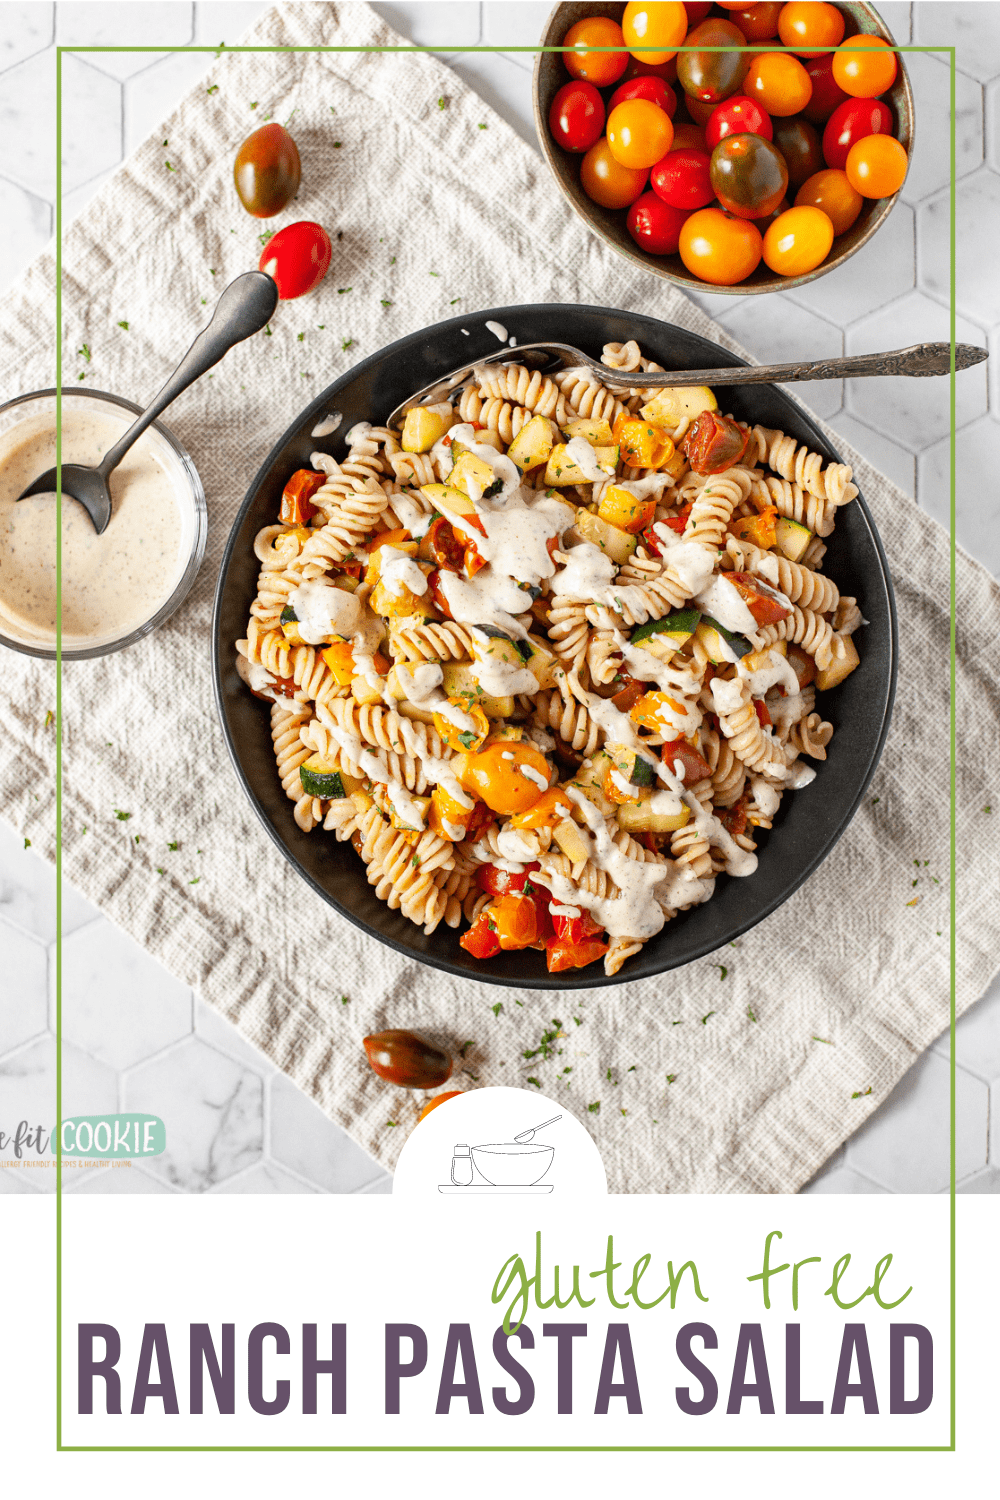 photo of pasta salad with text overlay